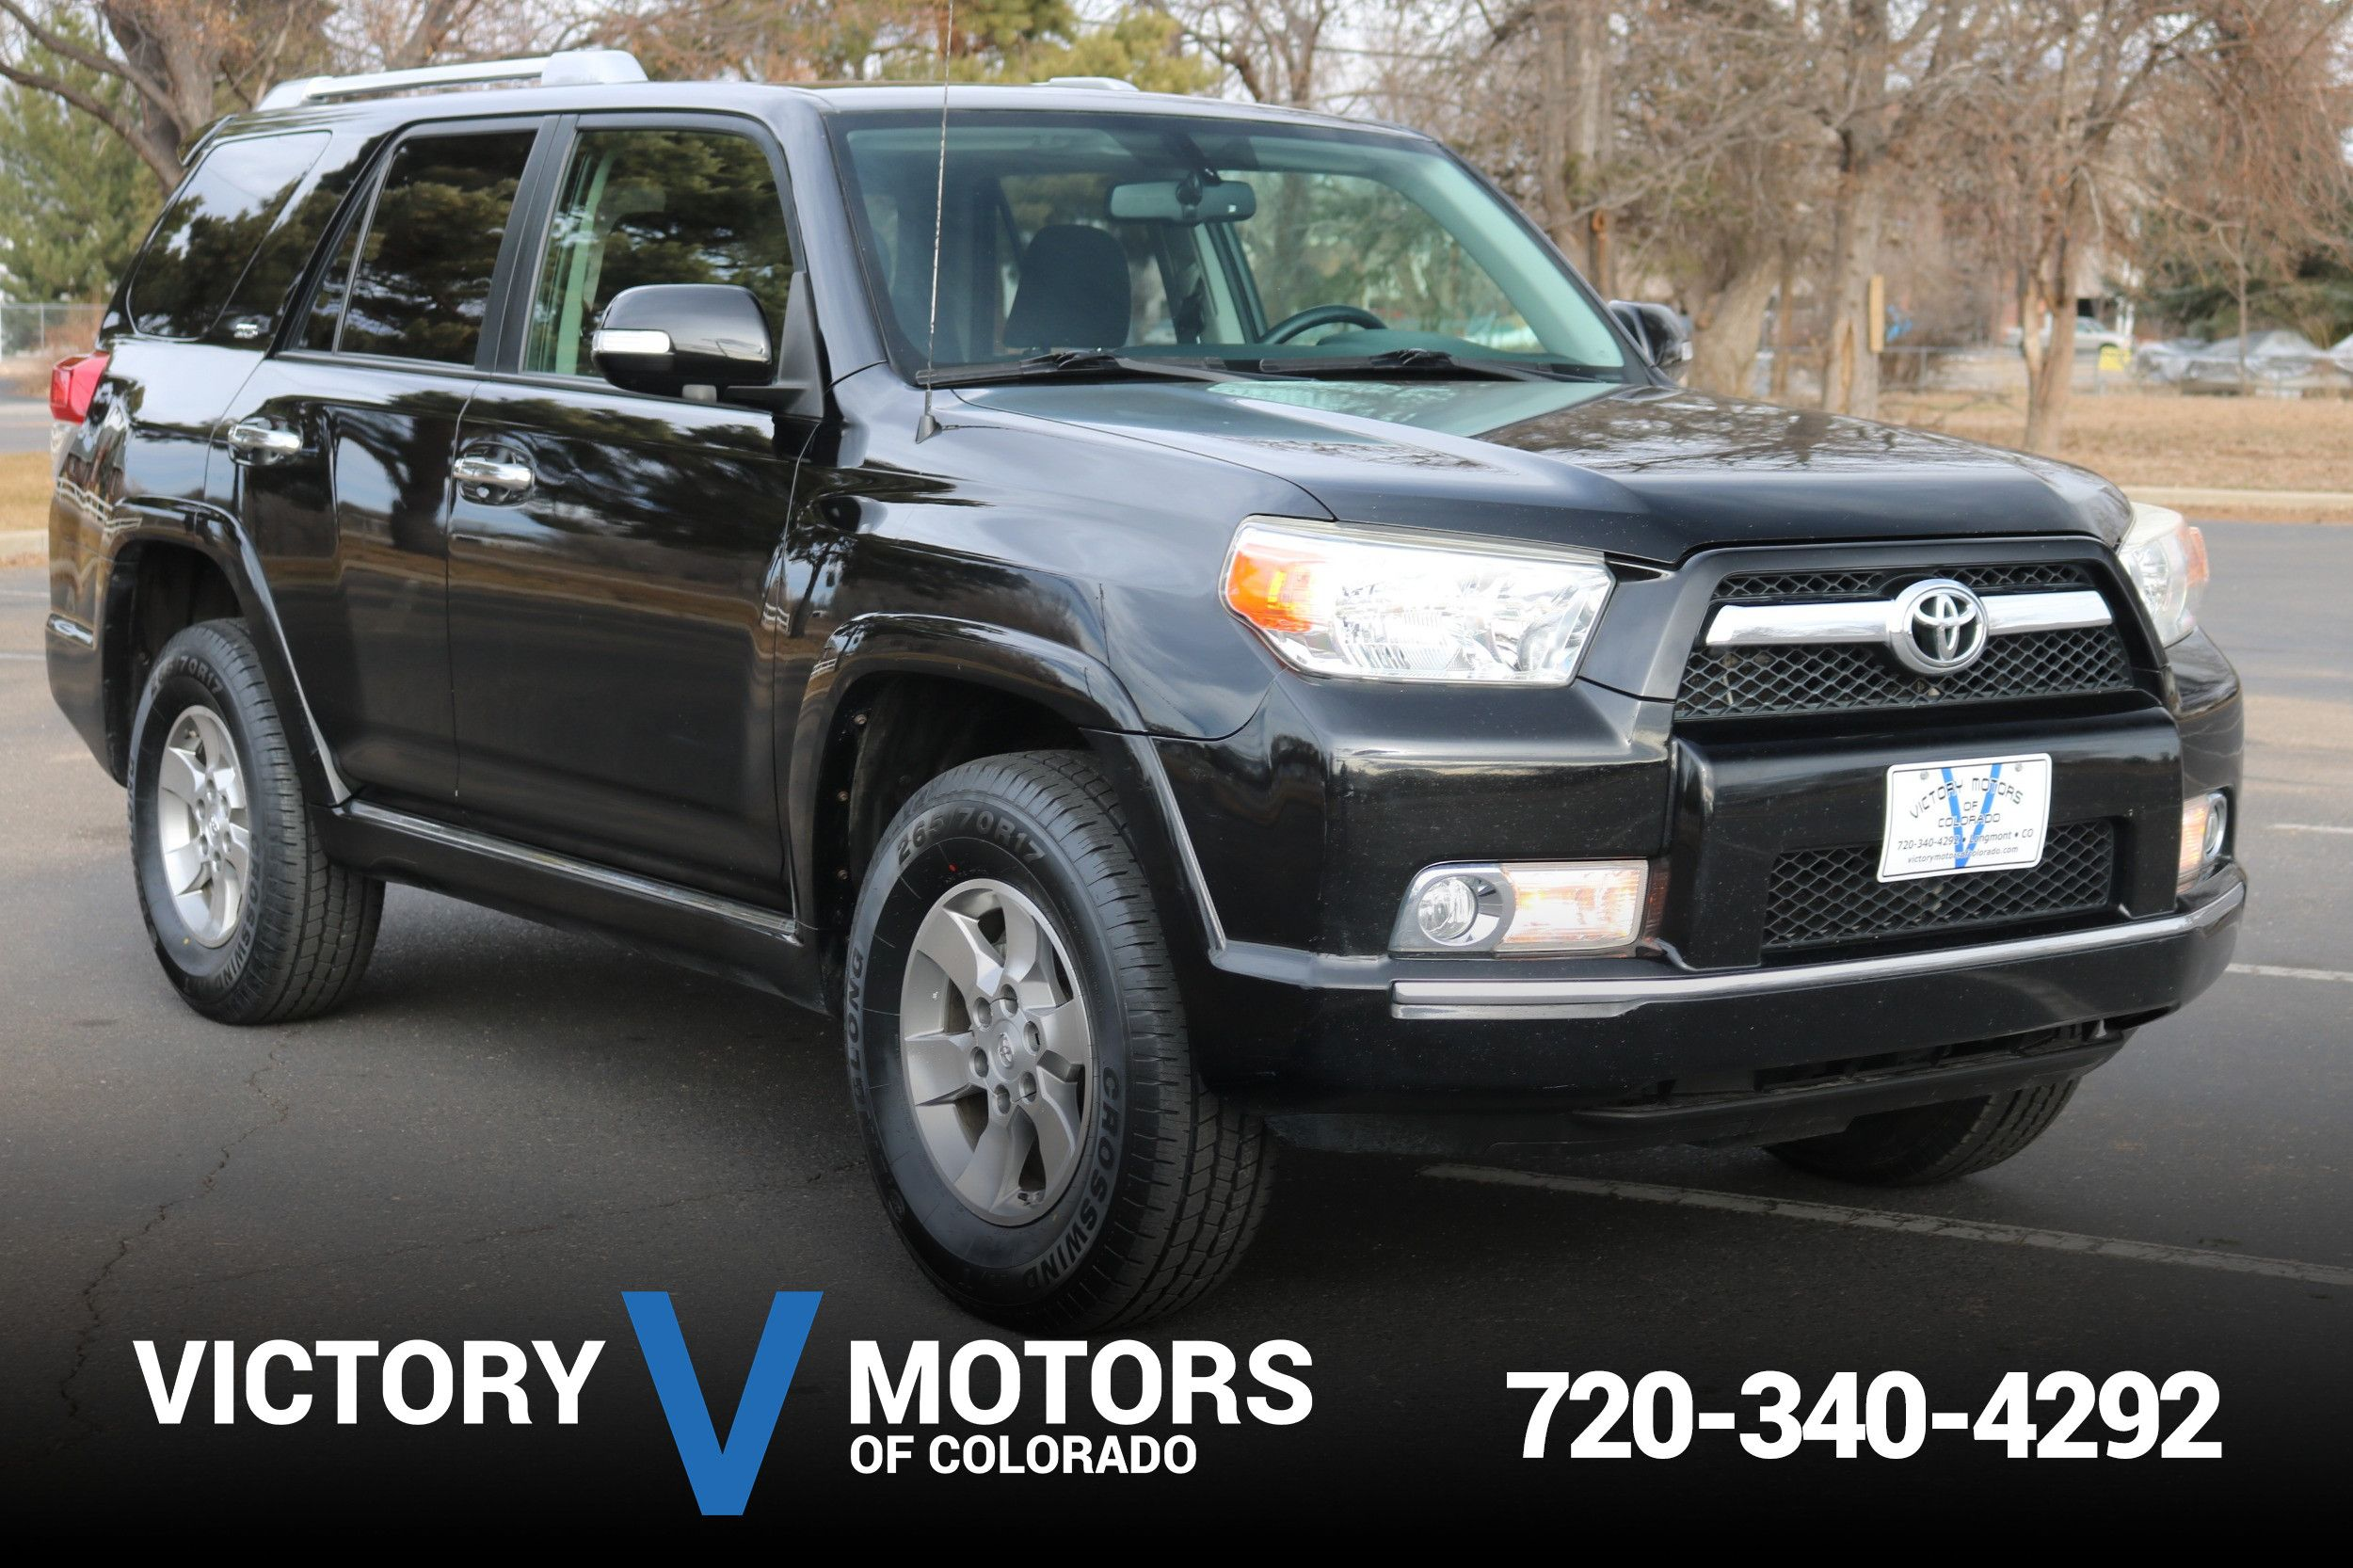 wheels toyota limited you where lets suv multi explore tool everyday on when want is that the